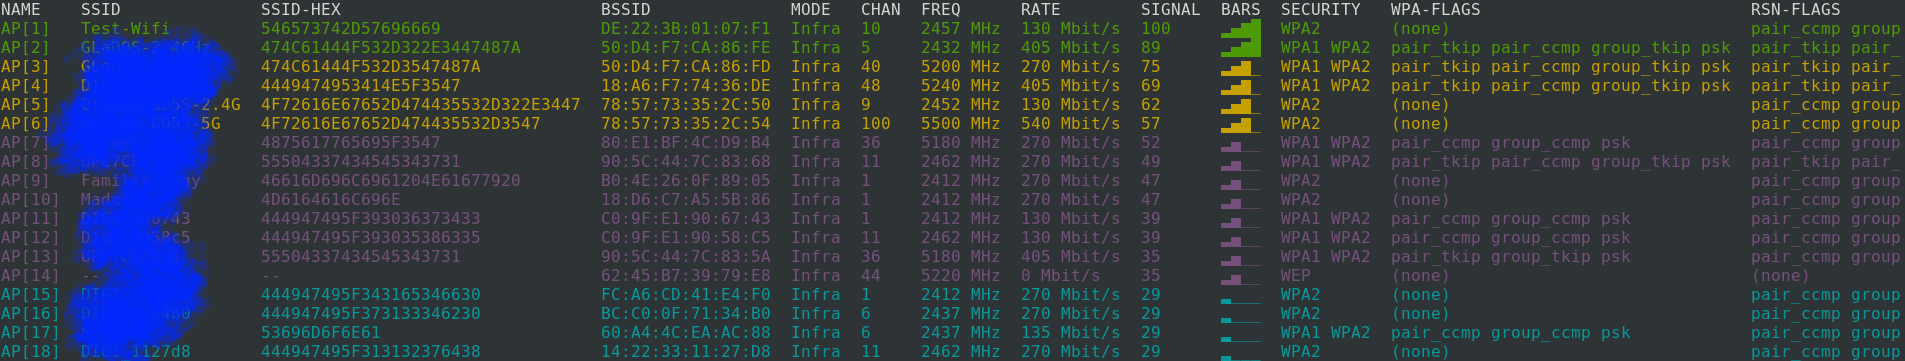 Scan Wifi networks in Linux with nmcli full view